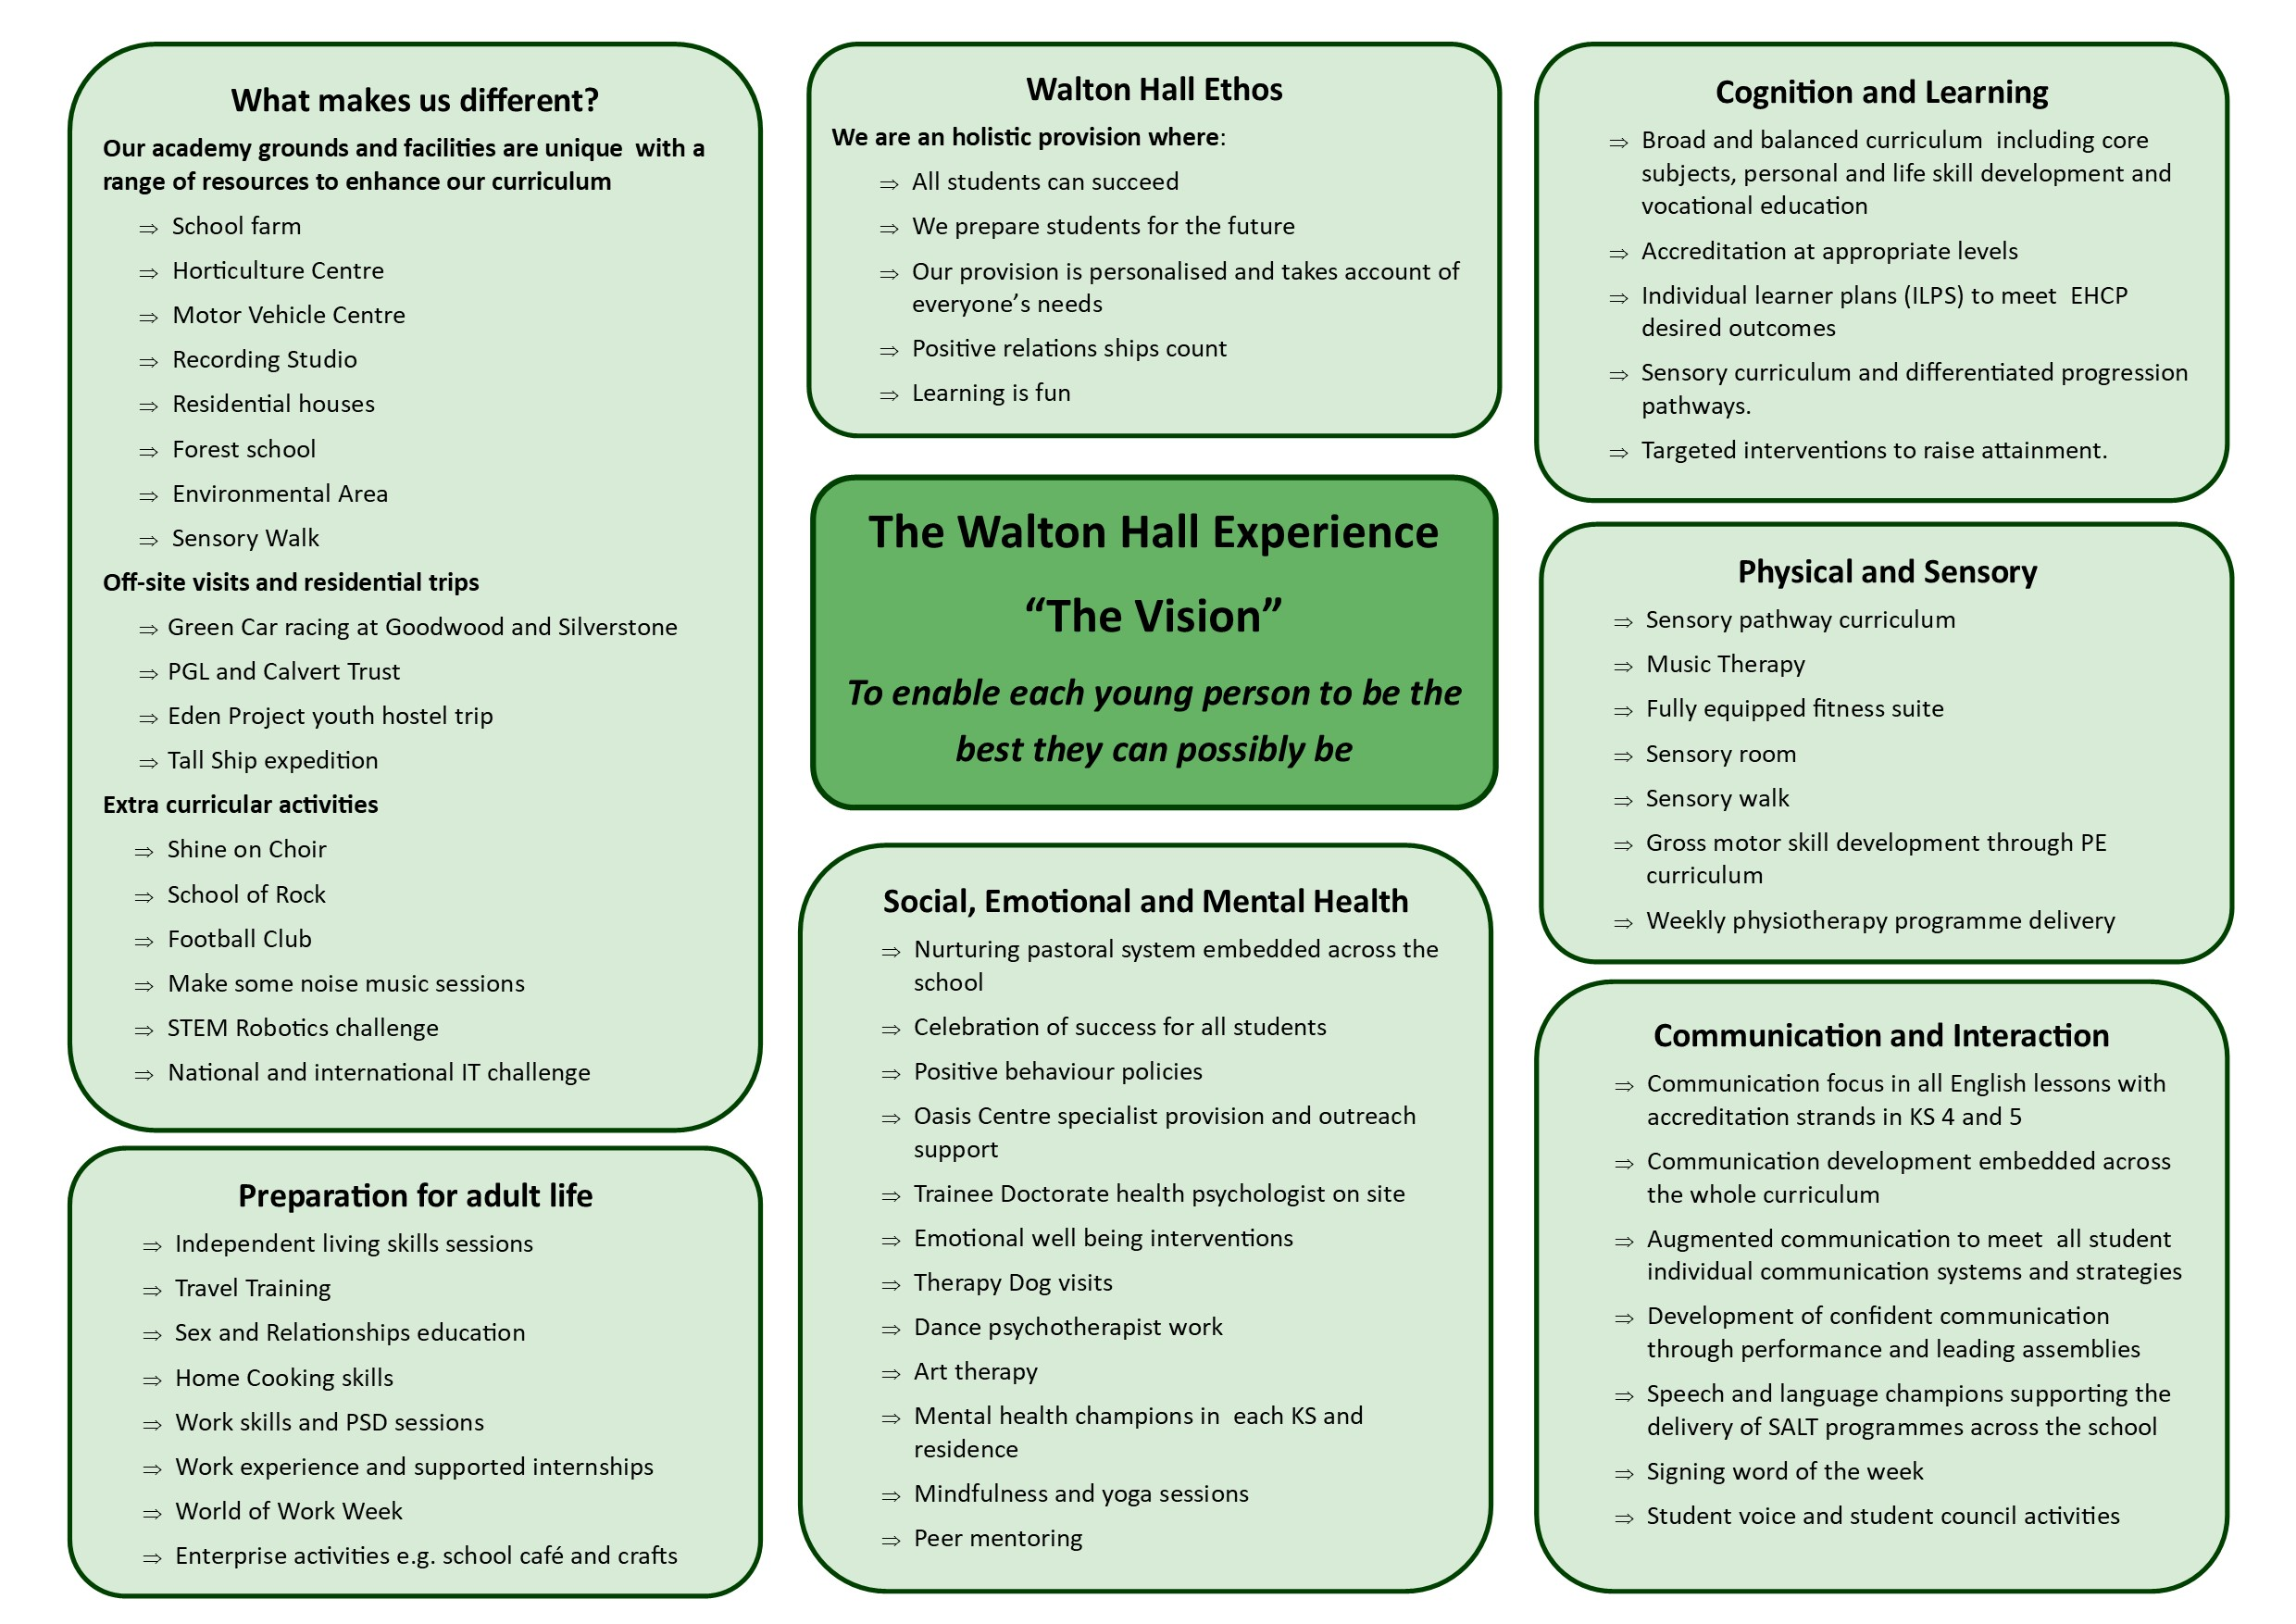 Walton Hall Academy curriculum overview image